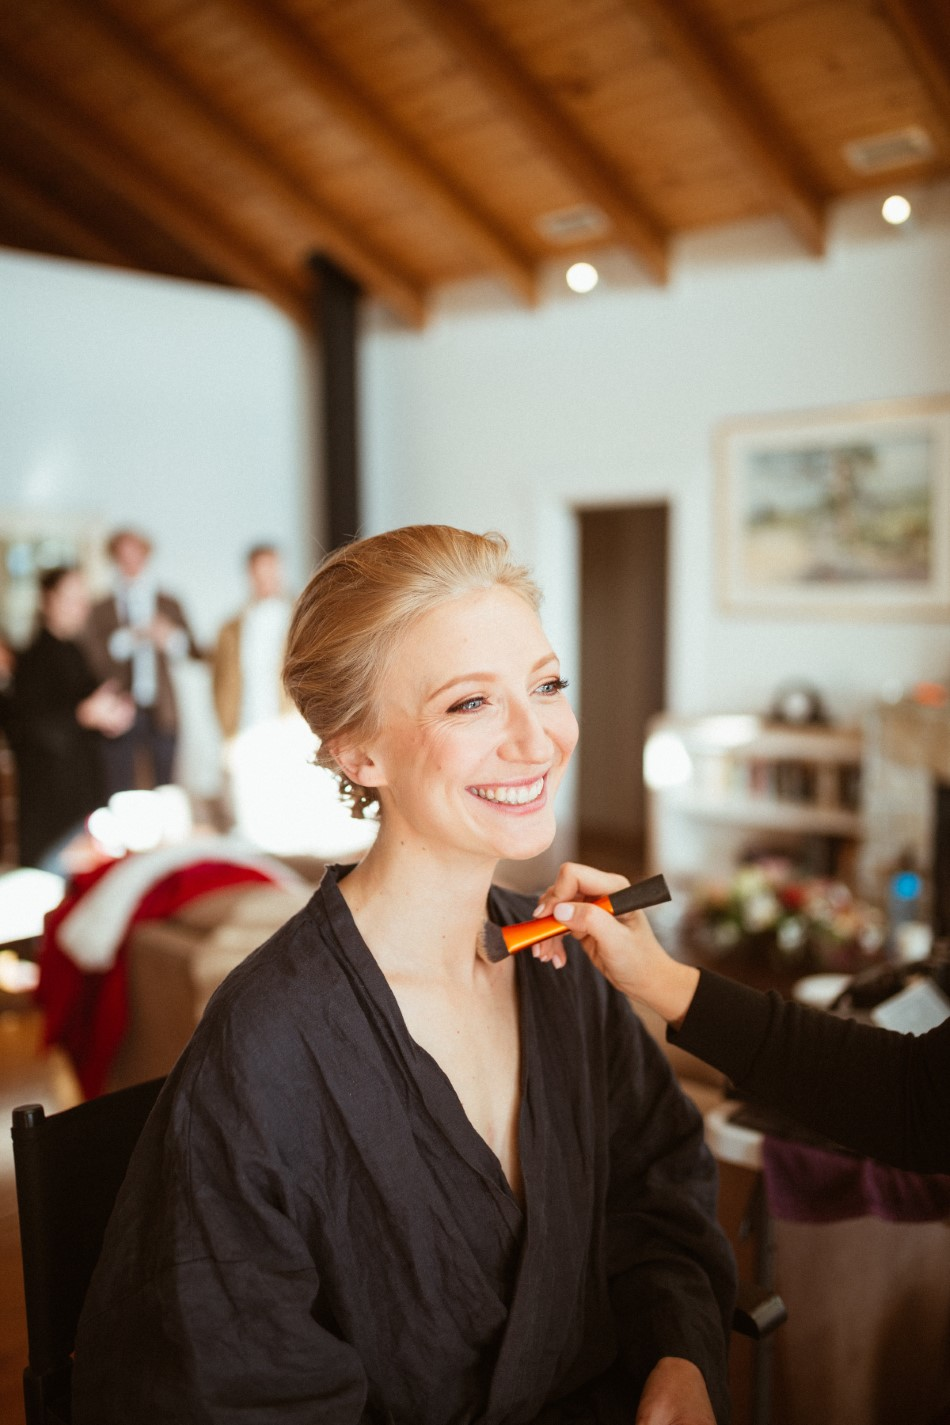 monique lawler makeup_shireshirewedding.com (3).jpg